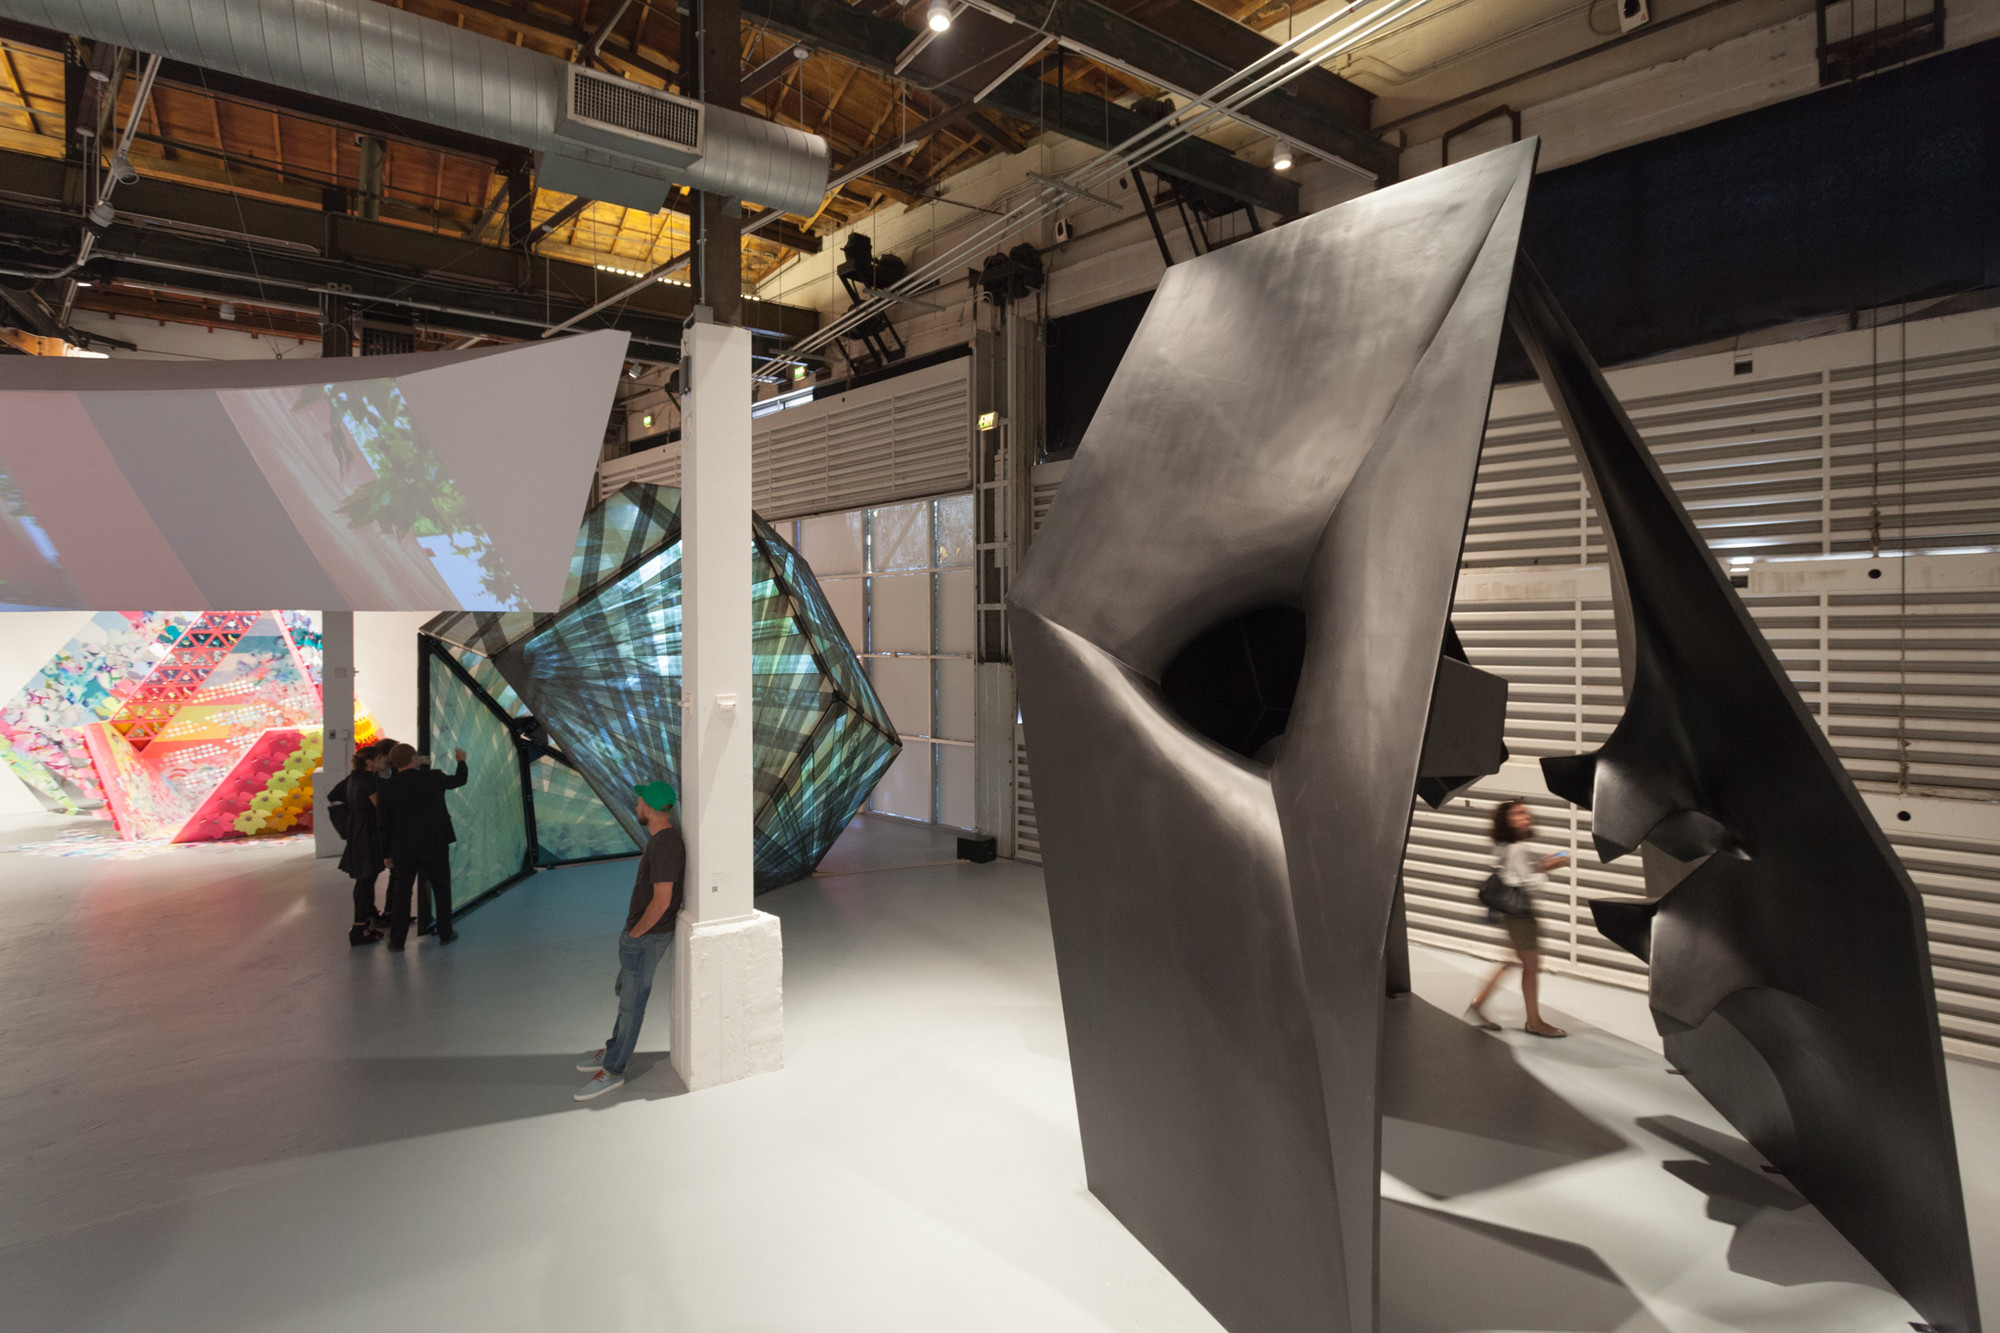 Same Time Zone, Different Standards, Foreground: Pavilion by Tom Wiscombe Design, Middleground: Textile Room Pavilion by P-A-T-T-E-R-N-S at The Museum of Contemparary Art, Los Angeles. Image © Taiyo Watanabe